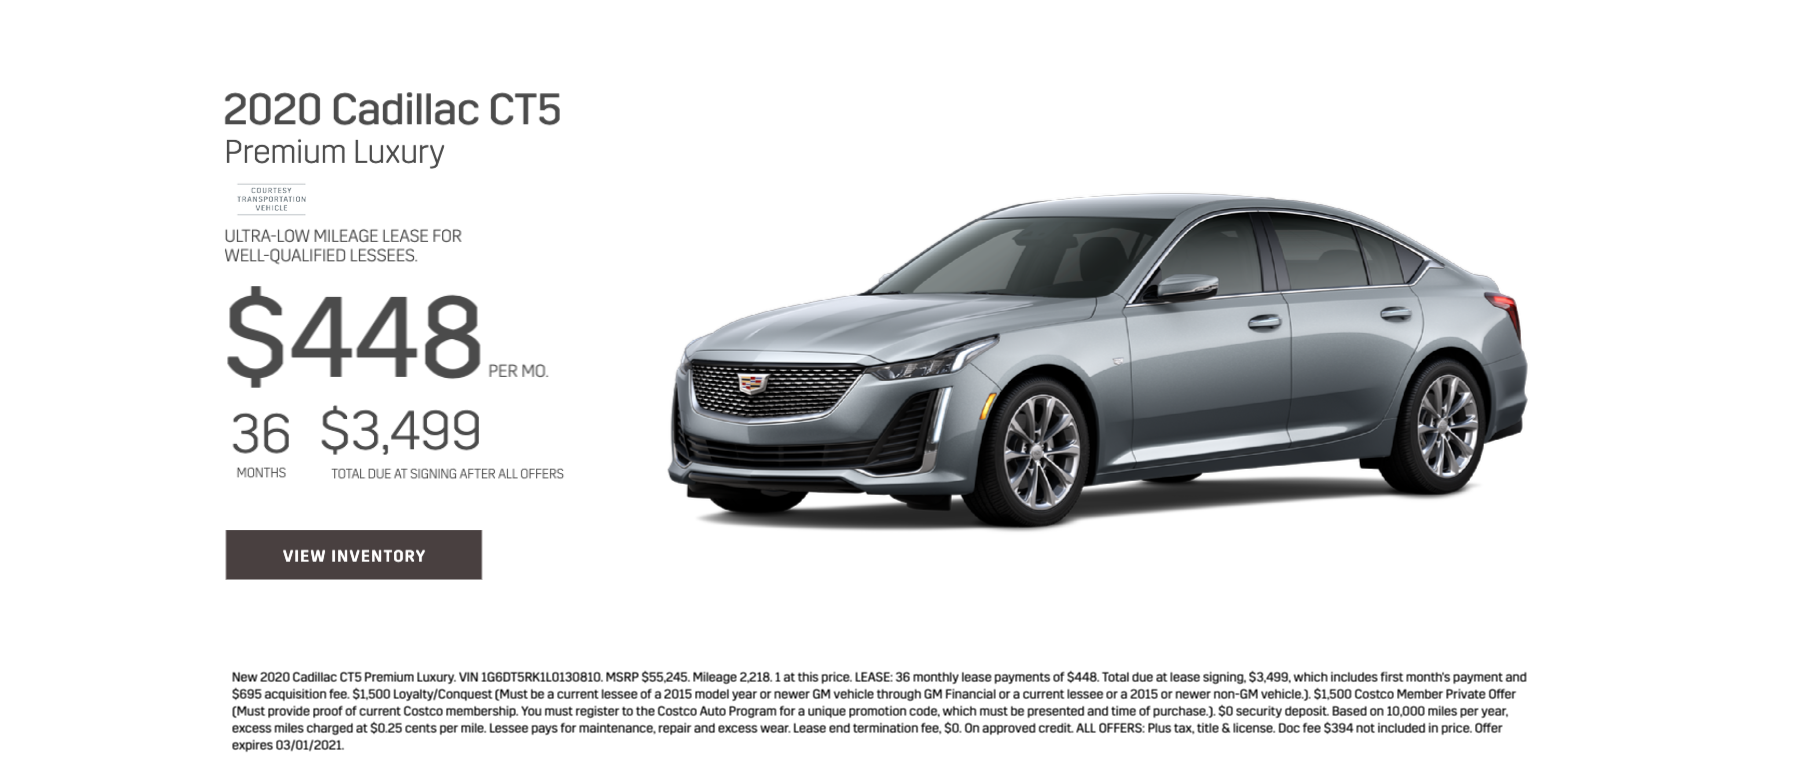 2020 Cadillac CT5 Premium Luxury Lease Offer for $448